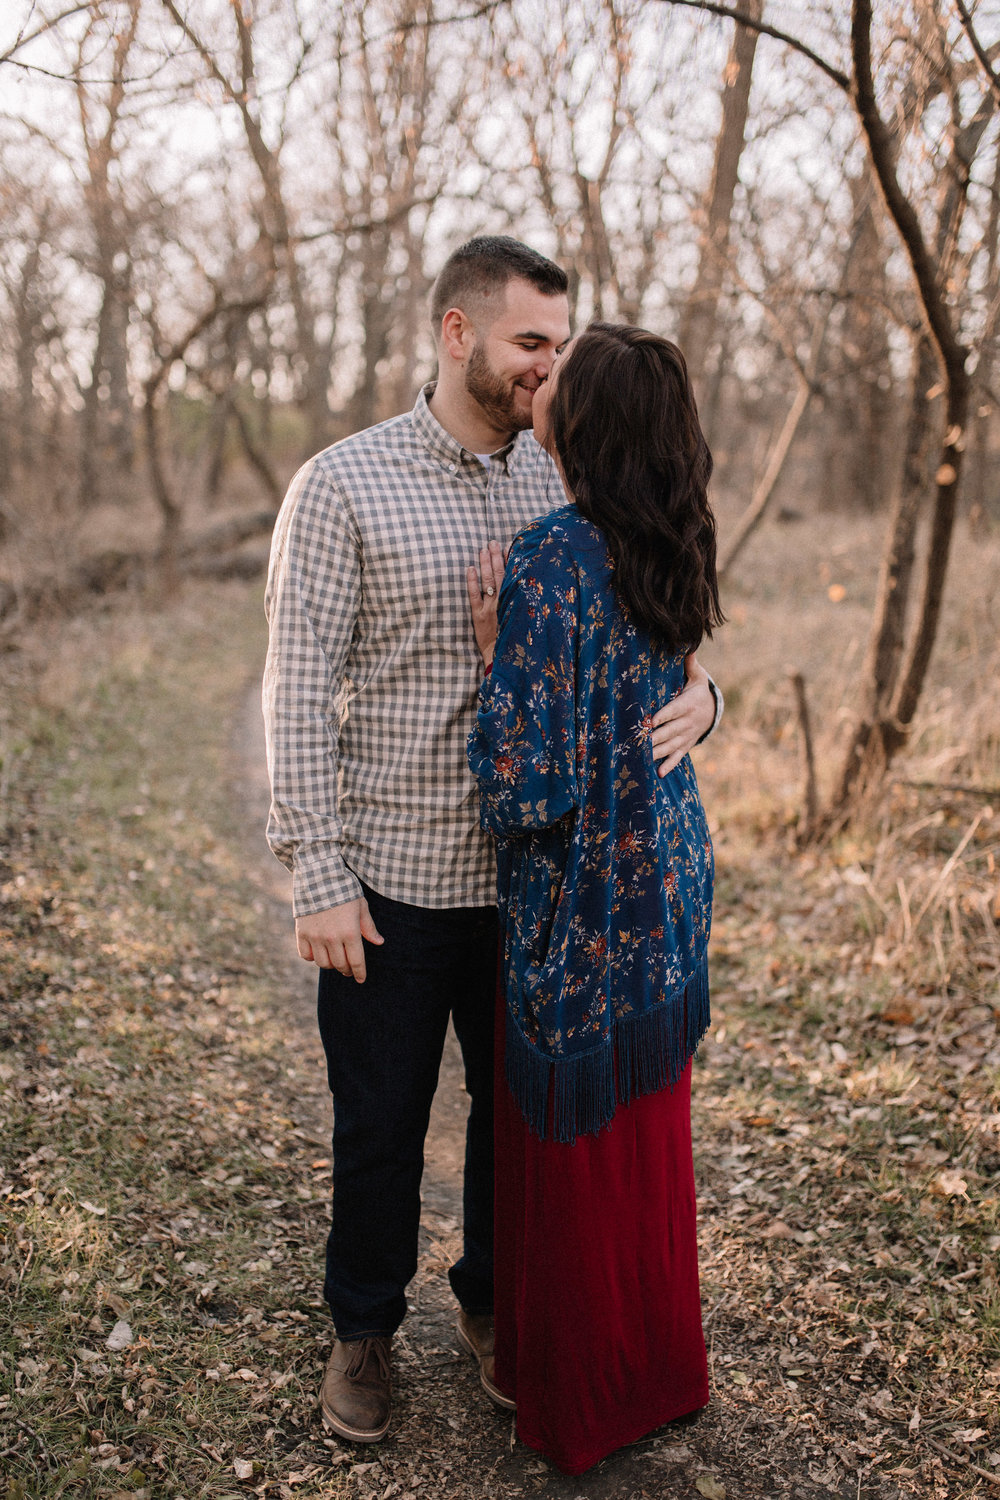 lincoln+ne+engagement+photography+wedding06.jpg